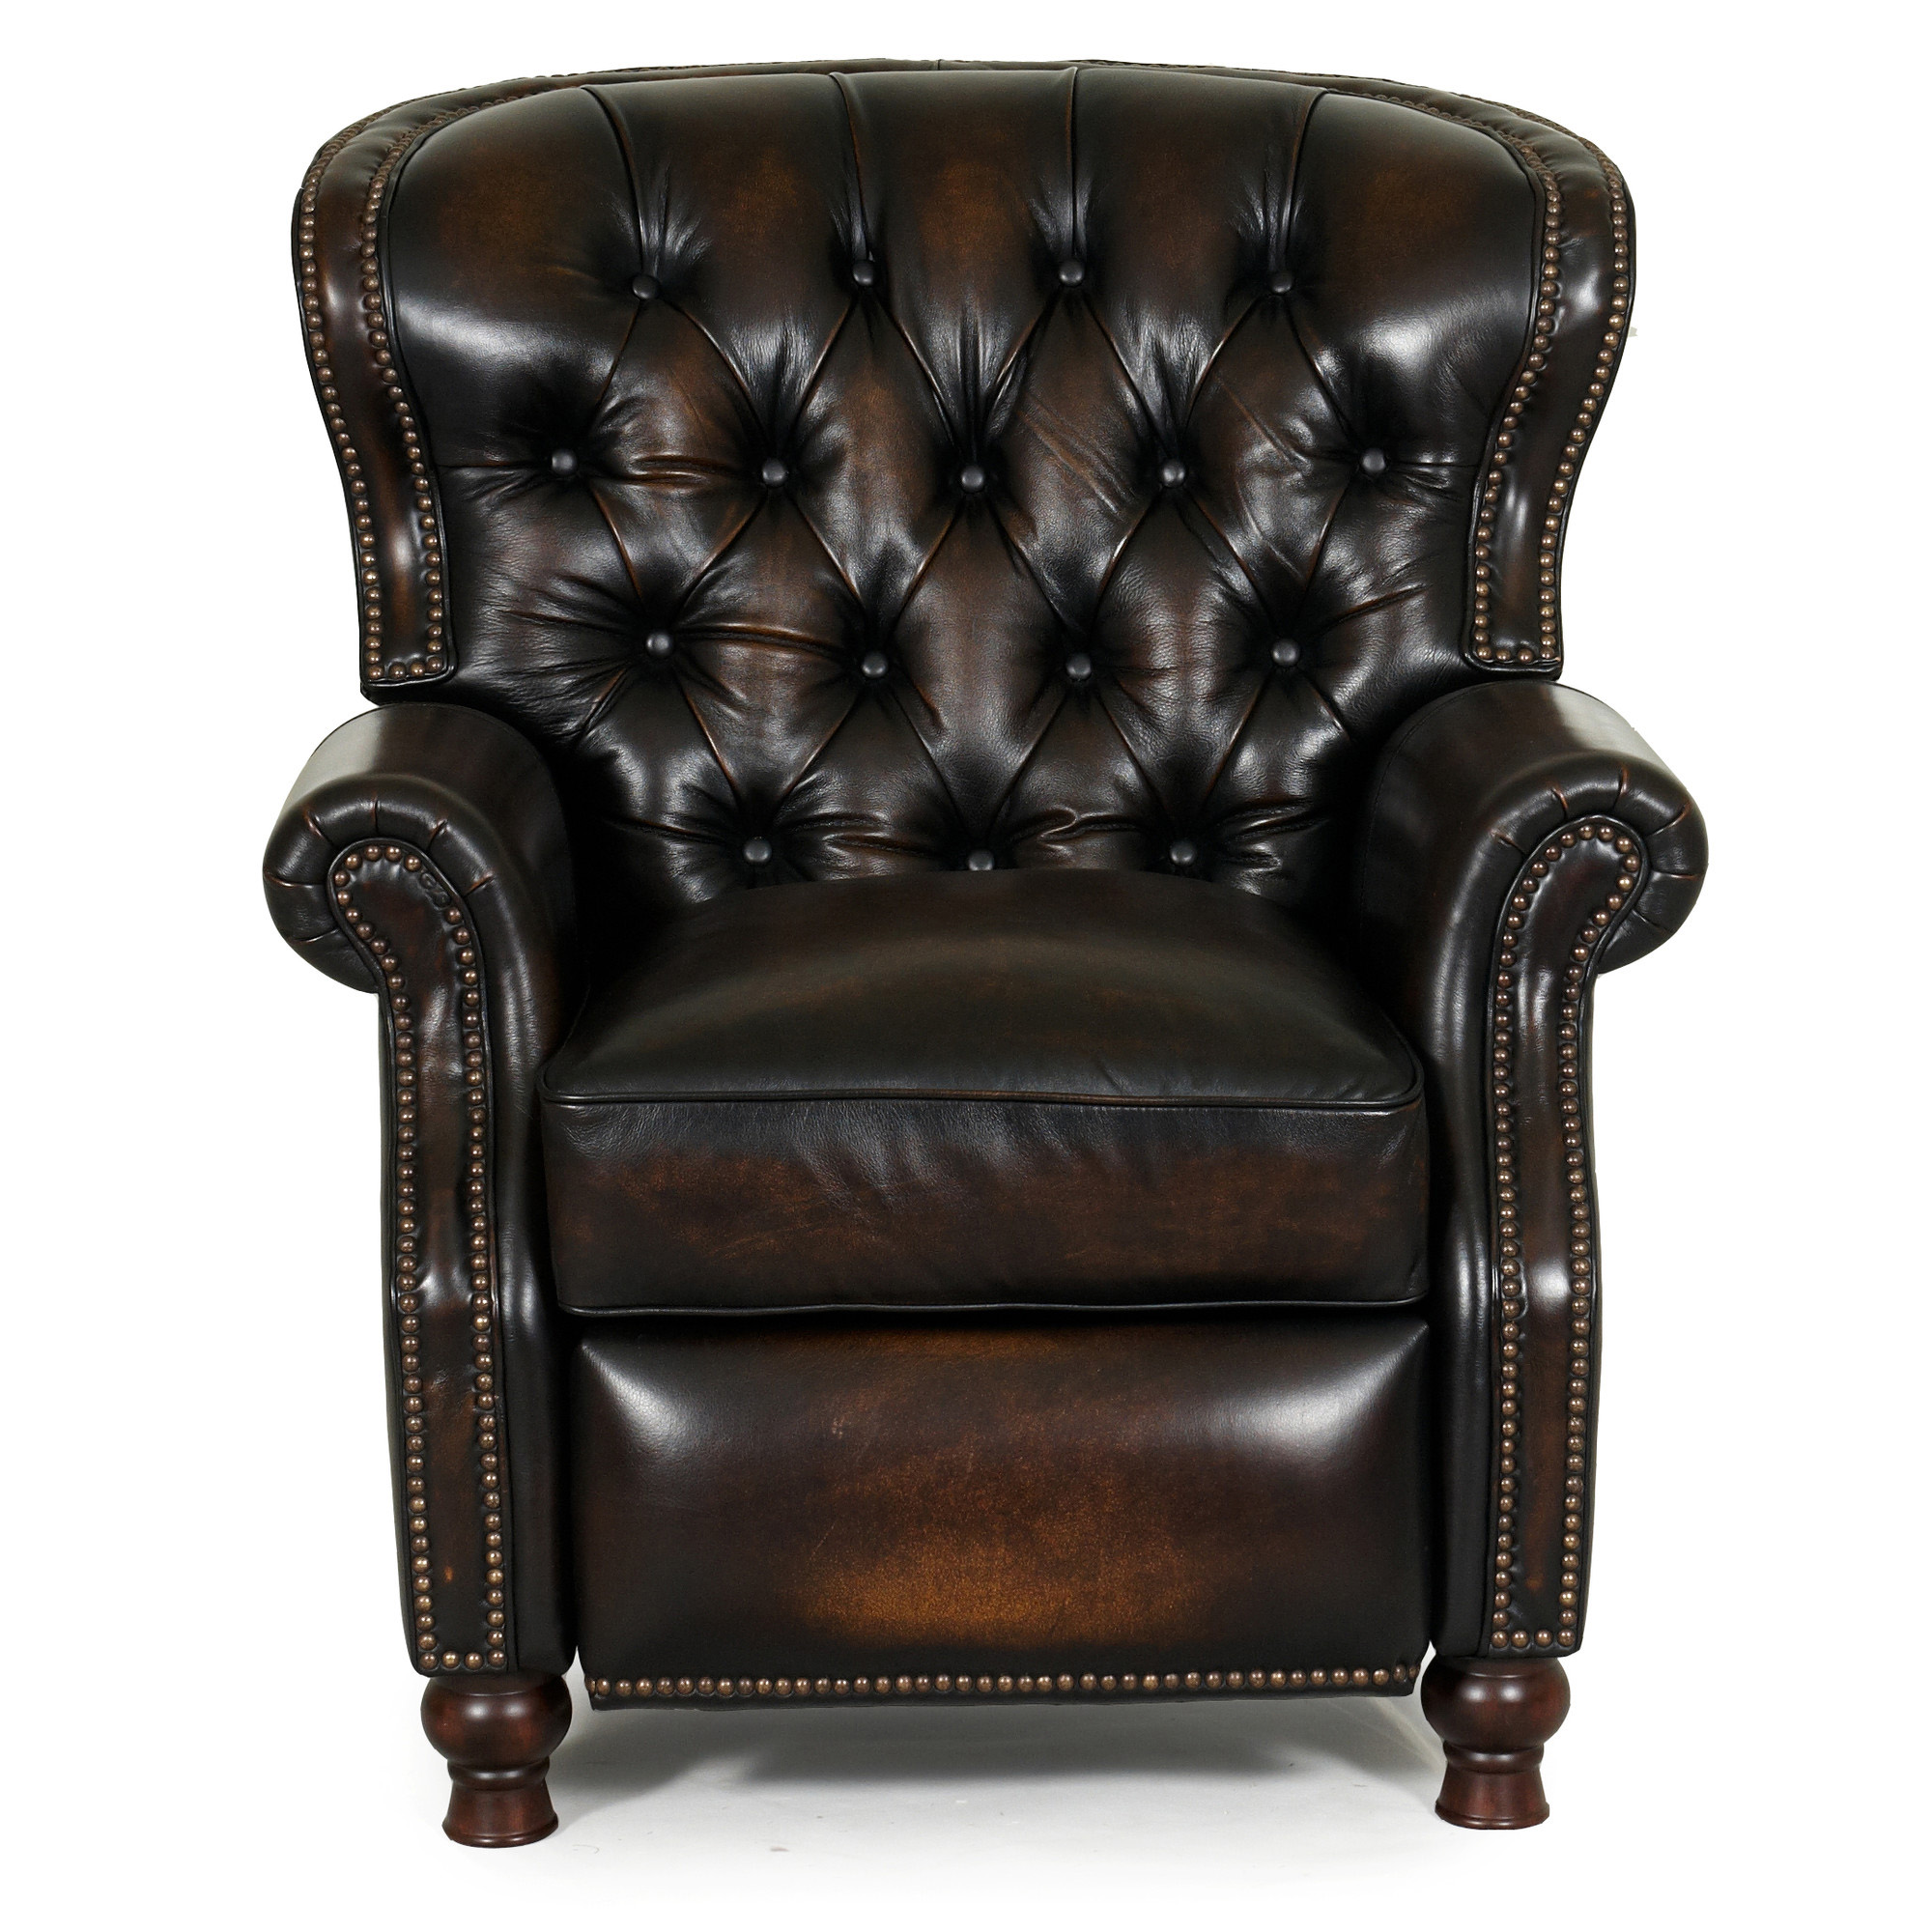 Delicieux Barcalounger Presidential II Recliner Chair Coffee Leather